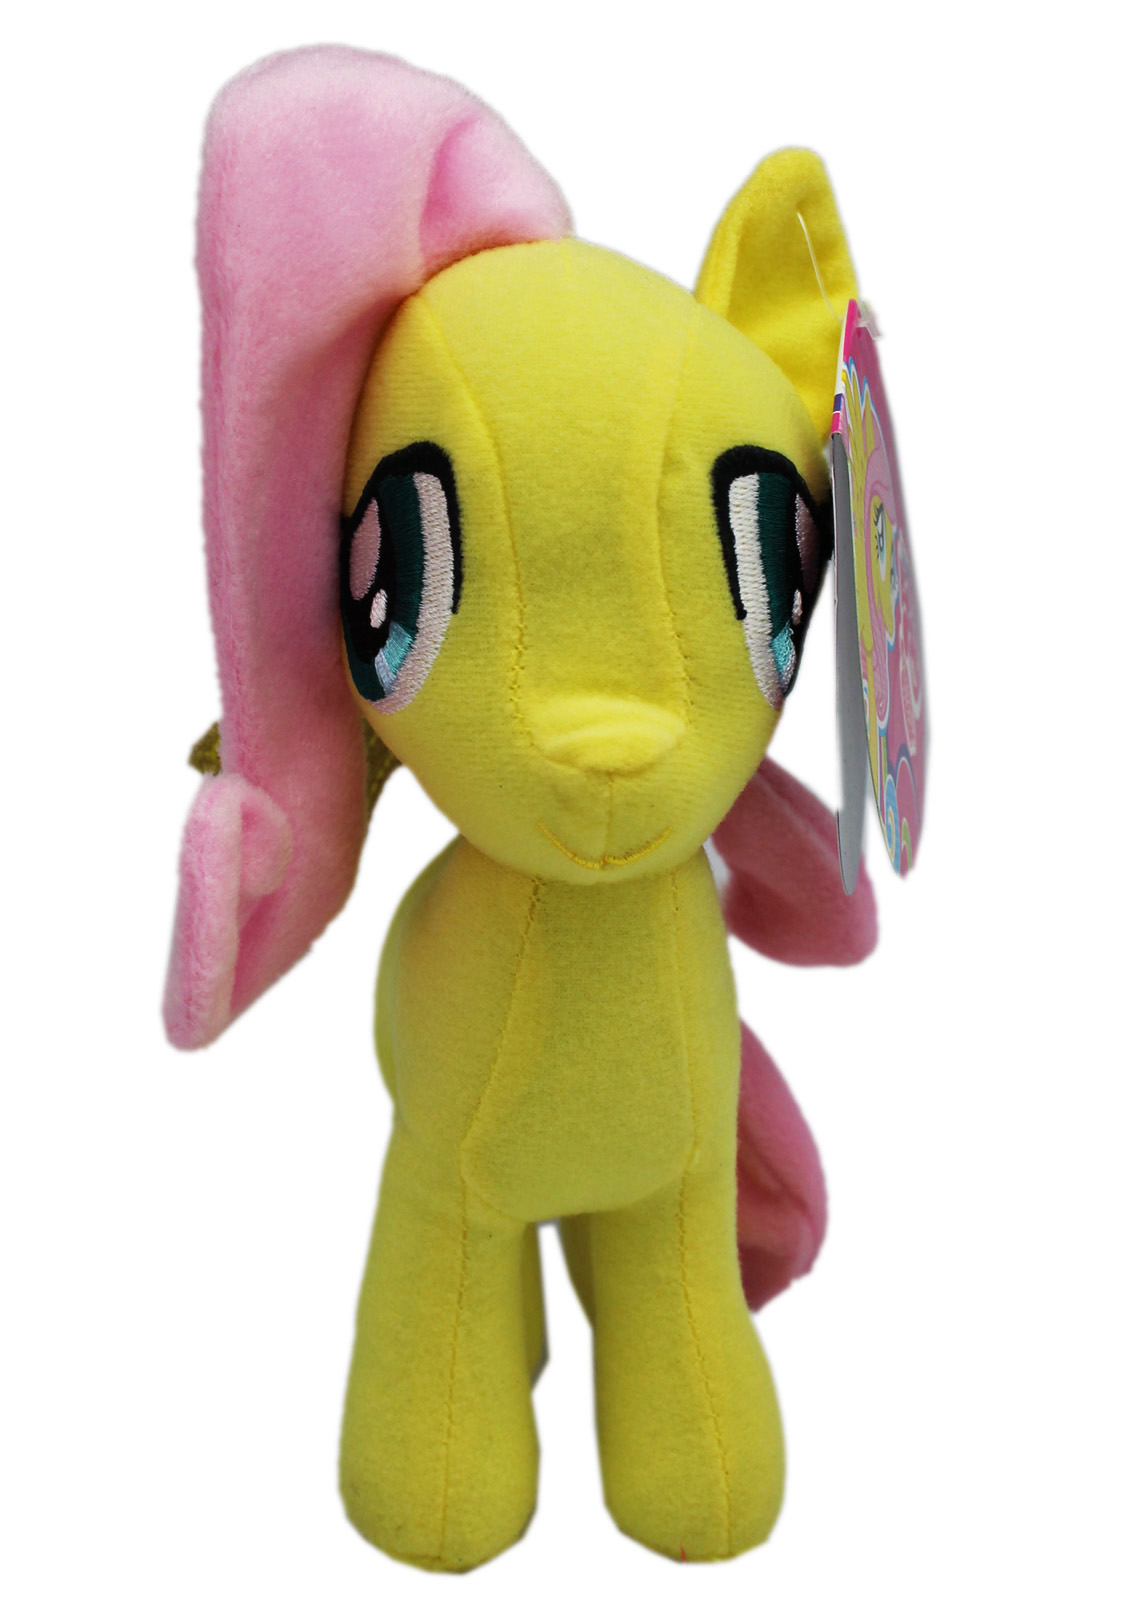 My Little Pony Friendship is Magic Fluttershy Plush Toy (8in) by